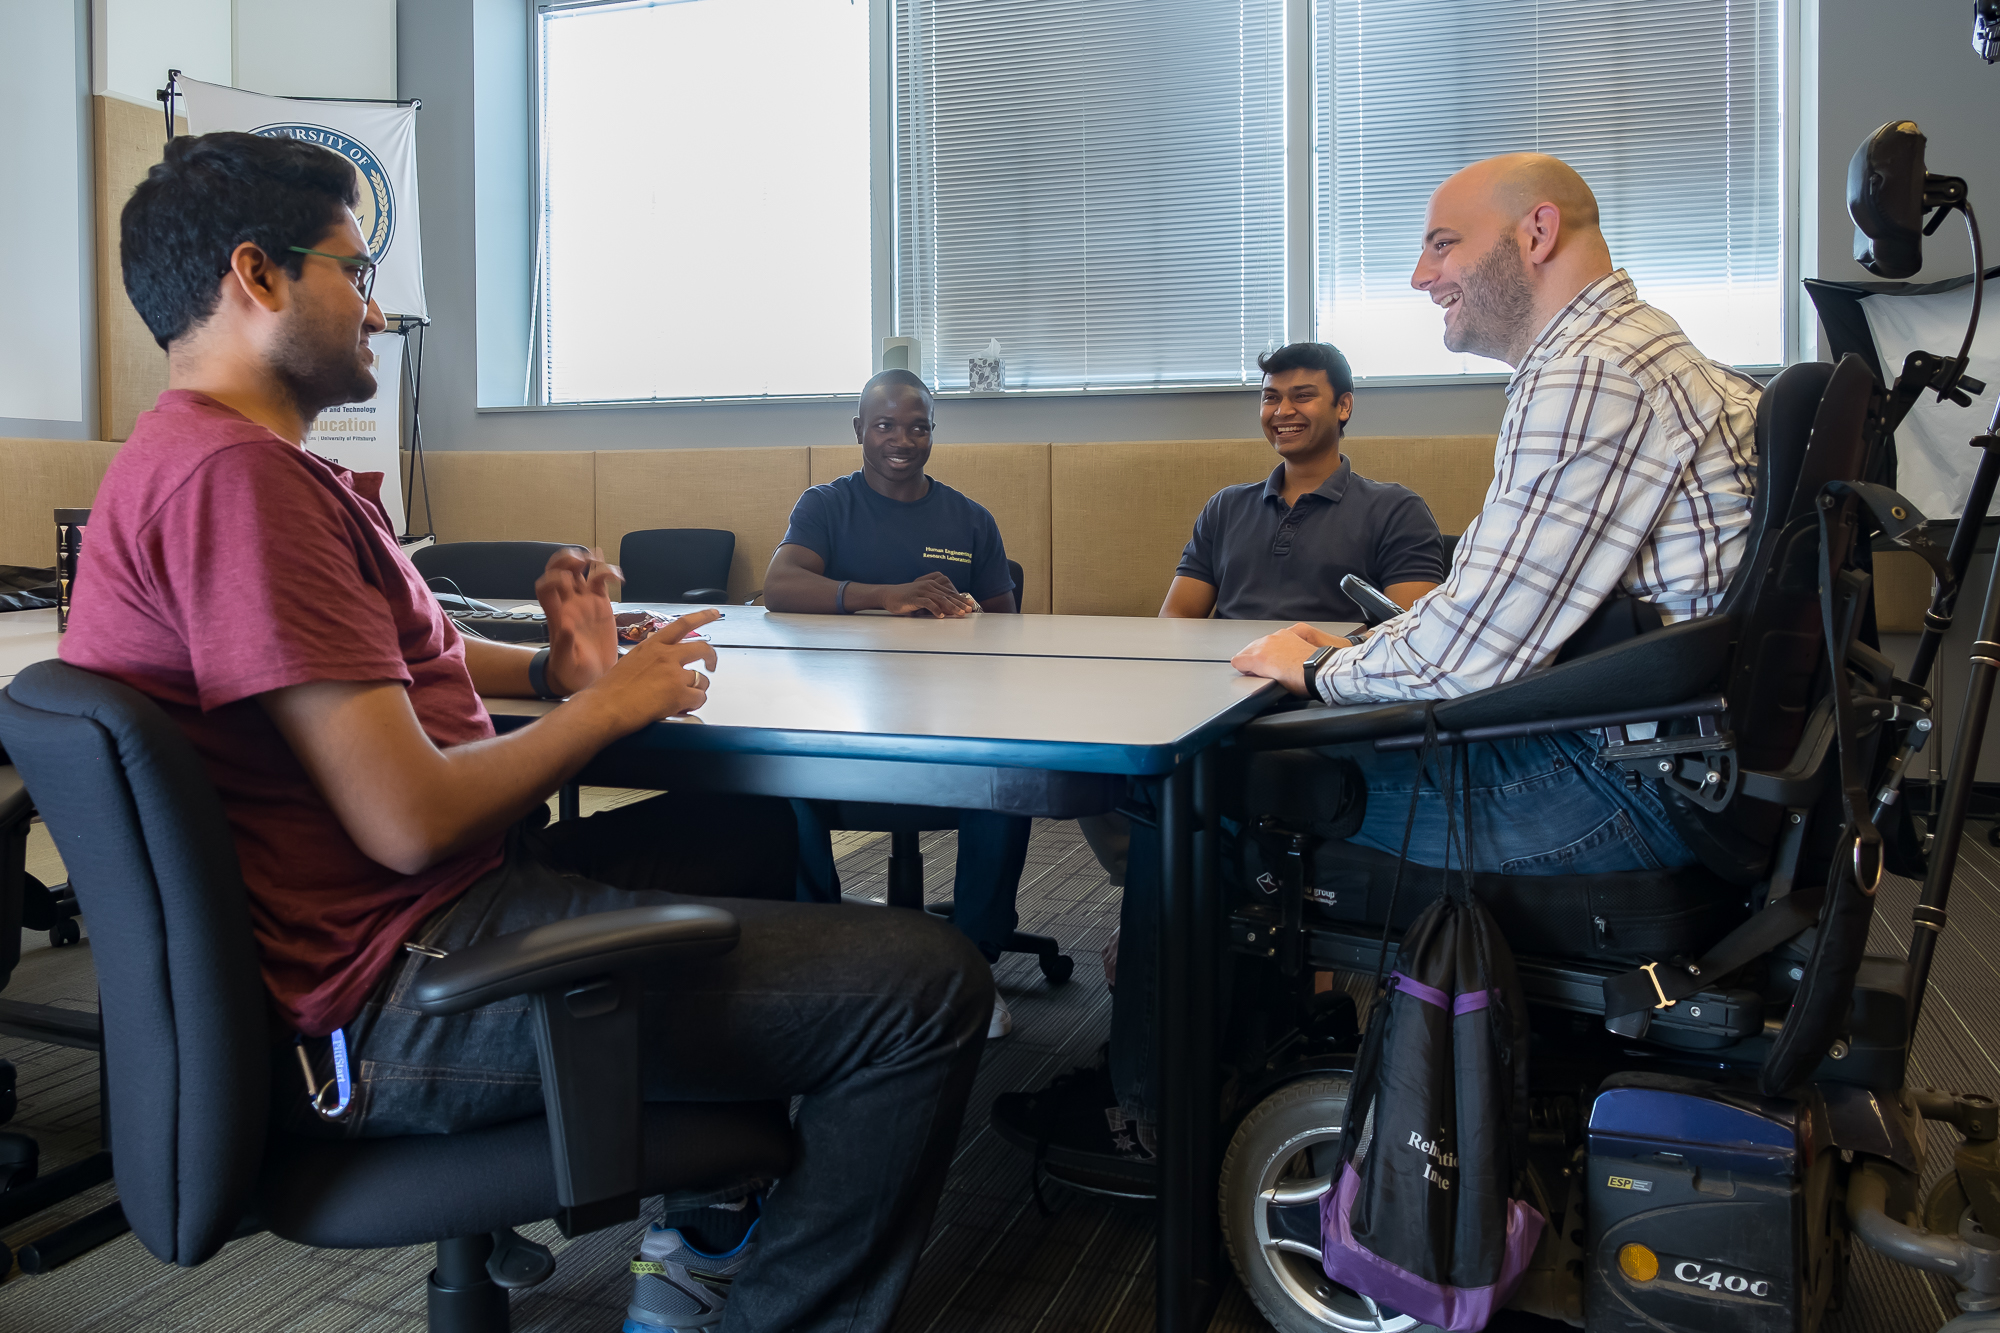 Four people sitting around a conference table, three in black office chairs and one in a power wheelchair.